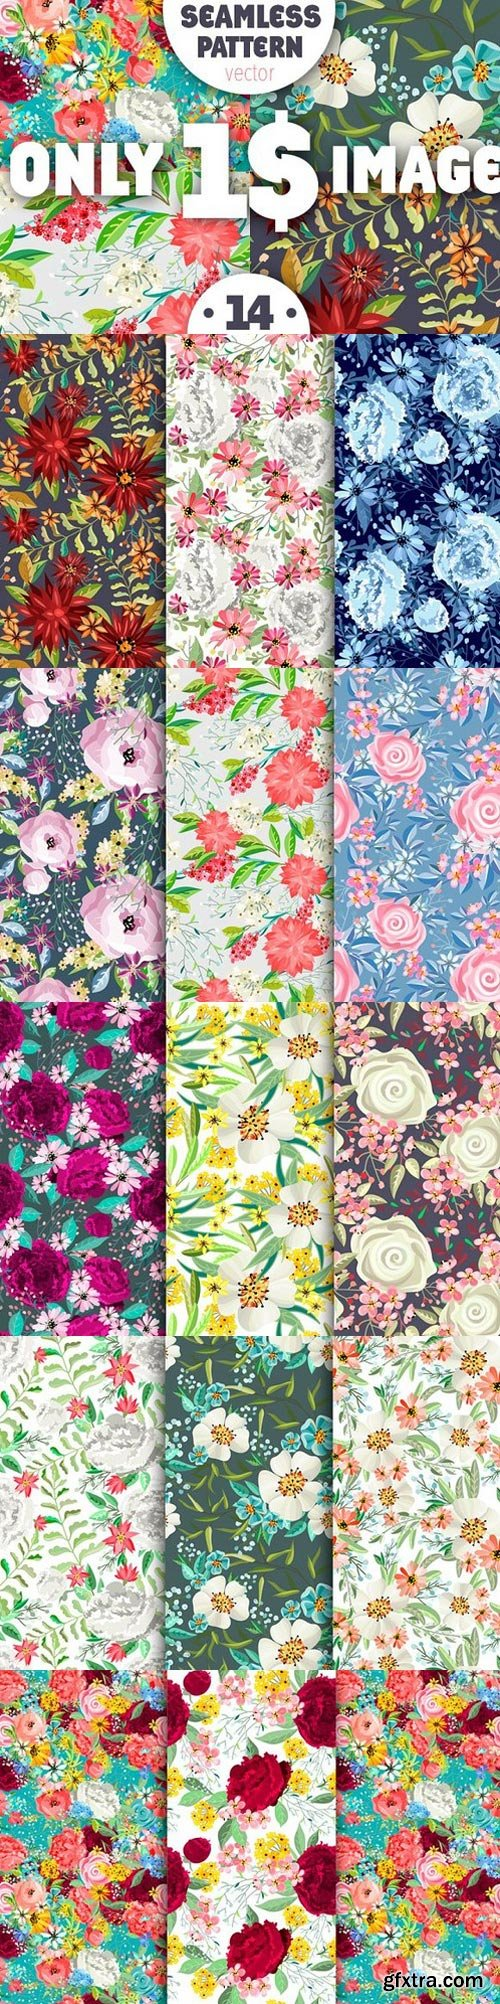 Pack of seamless patterns